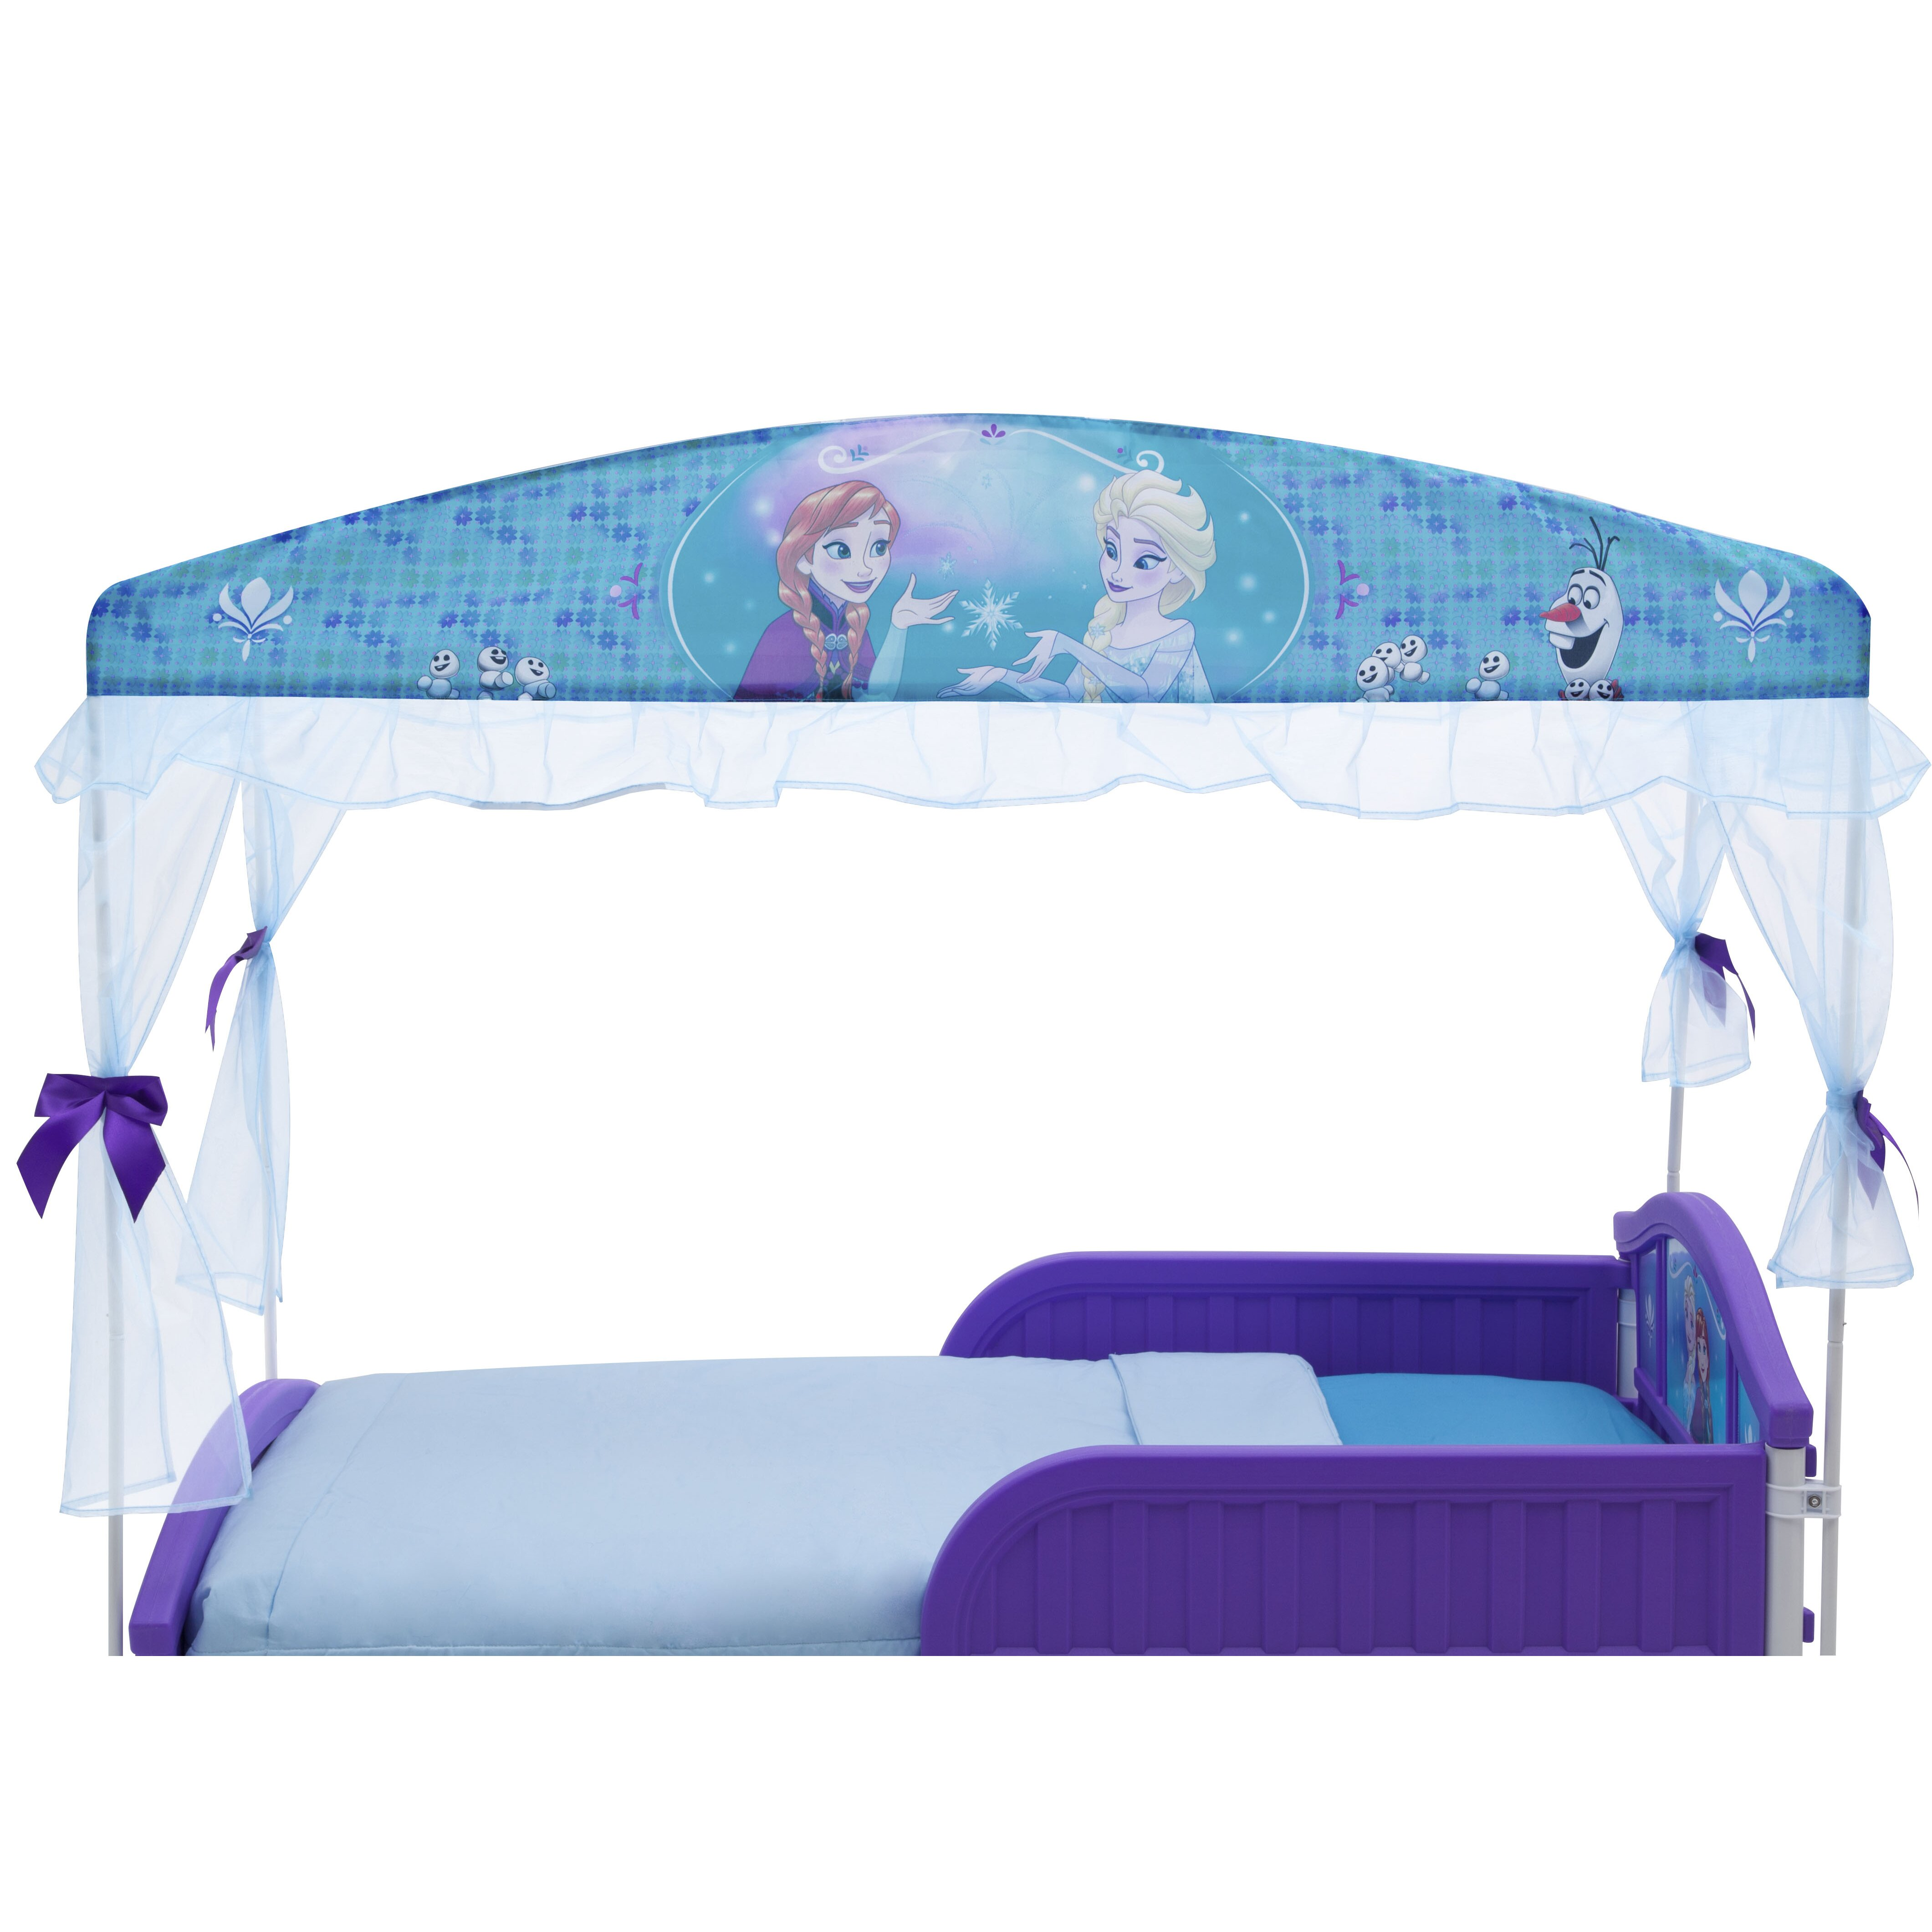 ... Frozen Canopy Bed Delta Children Disney Frozen Convertible Toddler Bed Reviews Wayfair ...  sc 1 st  Diydesign & Frozen Canopy Bed - Disney Frozen Bed Canopy New Ebay Disney ...